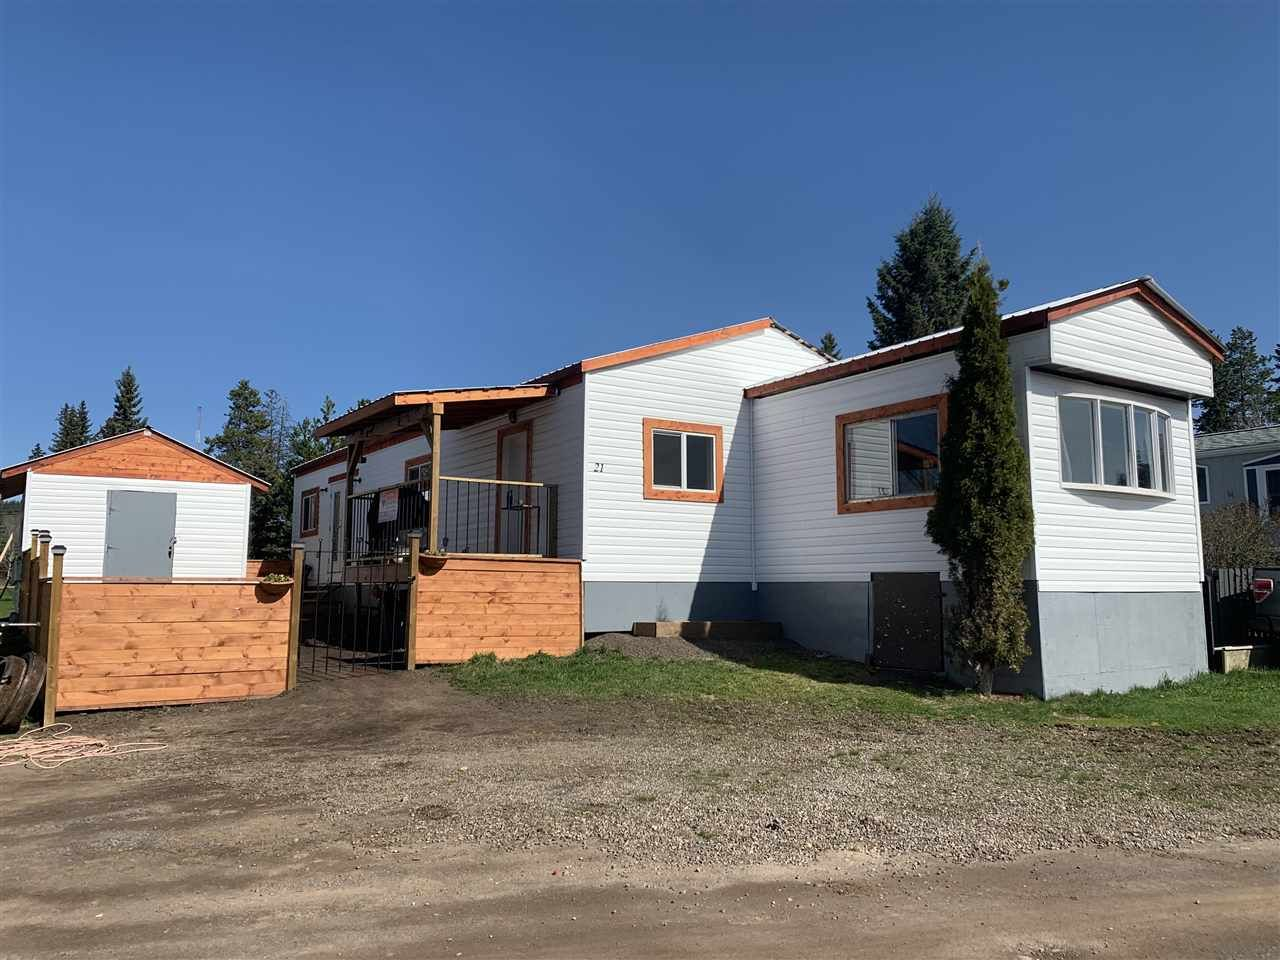 """Main Photo: 21 95 LAIDLAW Road in Smithers: Smithers - Rural Manufactured Home for sale in """"MOUNTAIN VIEW MOBILE HOME PARK"""" (Smithers And Area (Zone 54))  : MLS®# R2441463"""